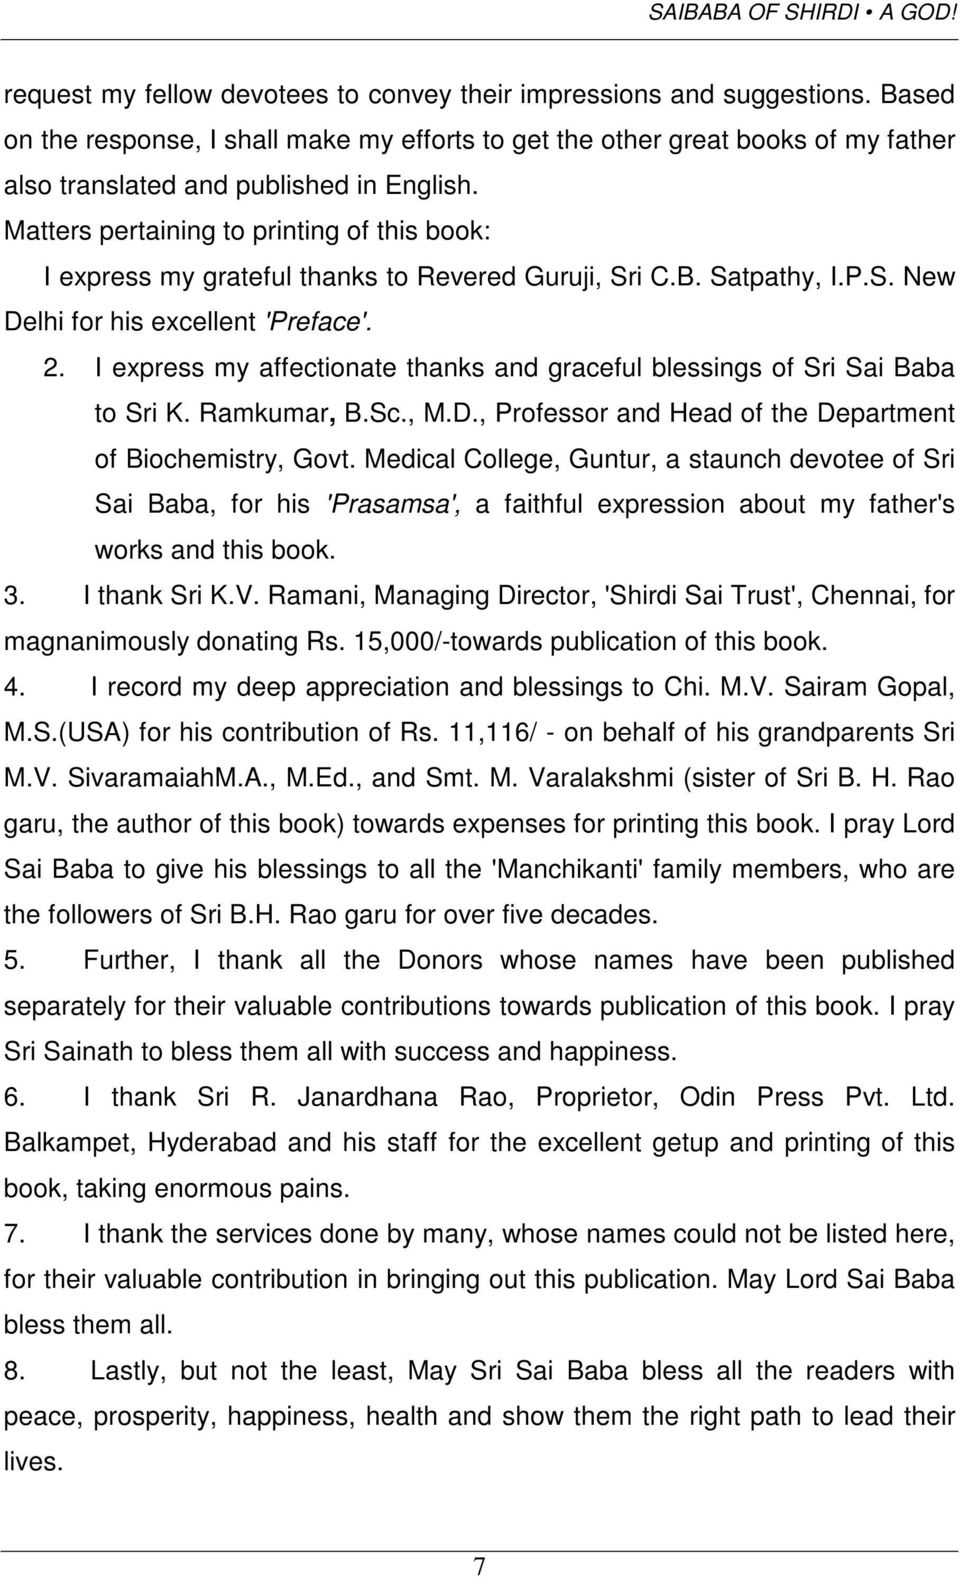 Matters pertaining to printing of this book: I express my grateful thanks to Revered Guruji, Sri C.B. Satpathy, I.P.S. New Delhi for his excellent 'Preface'. 2.